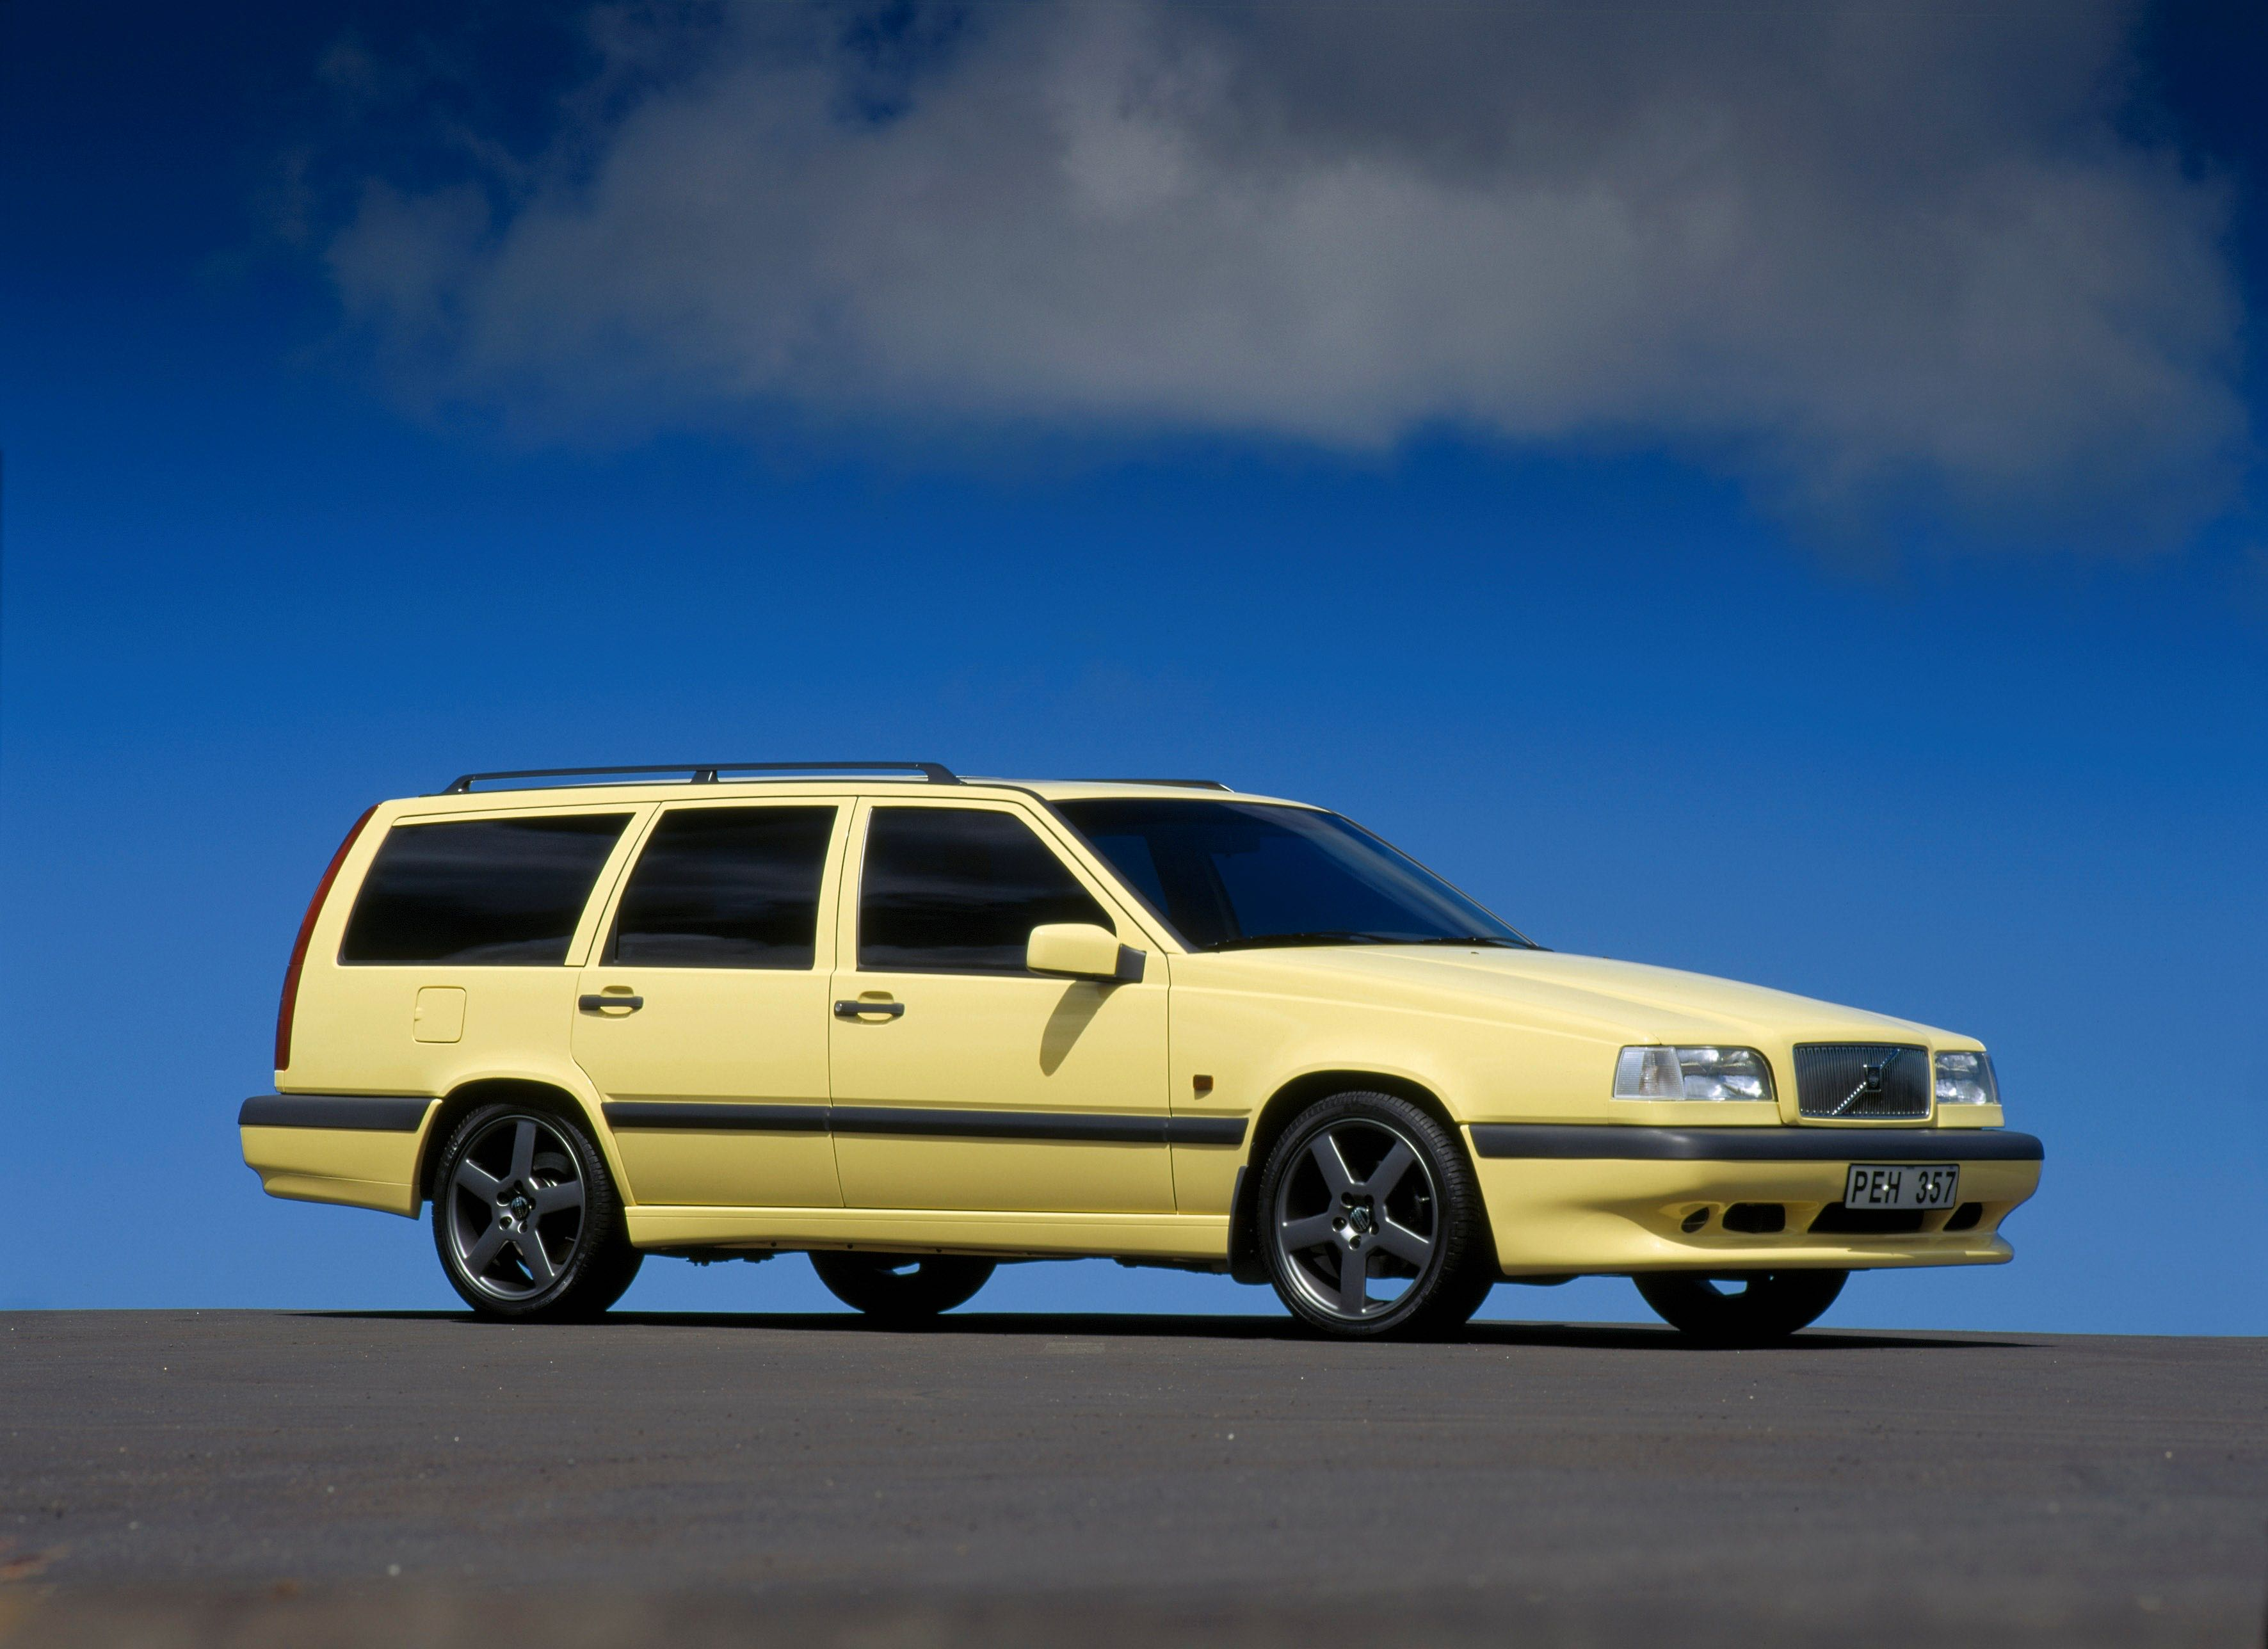 Volvo T 5r 850 -  850, 850 wagon, 1995, Exterior, Historical, Images, R, T-5R, Yellow, Yellow T-5R